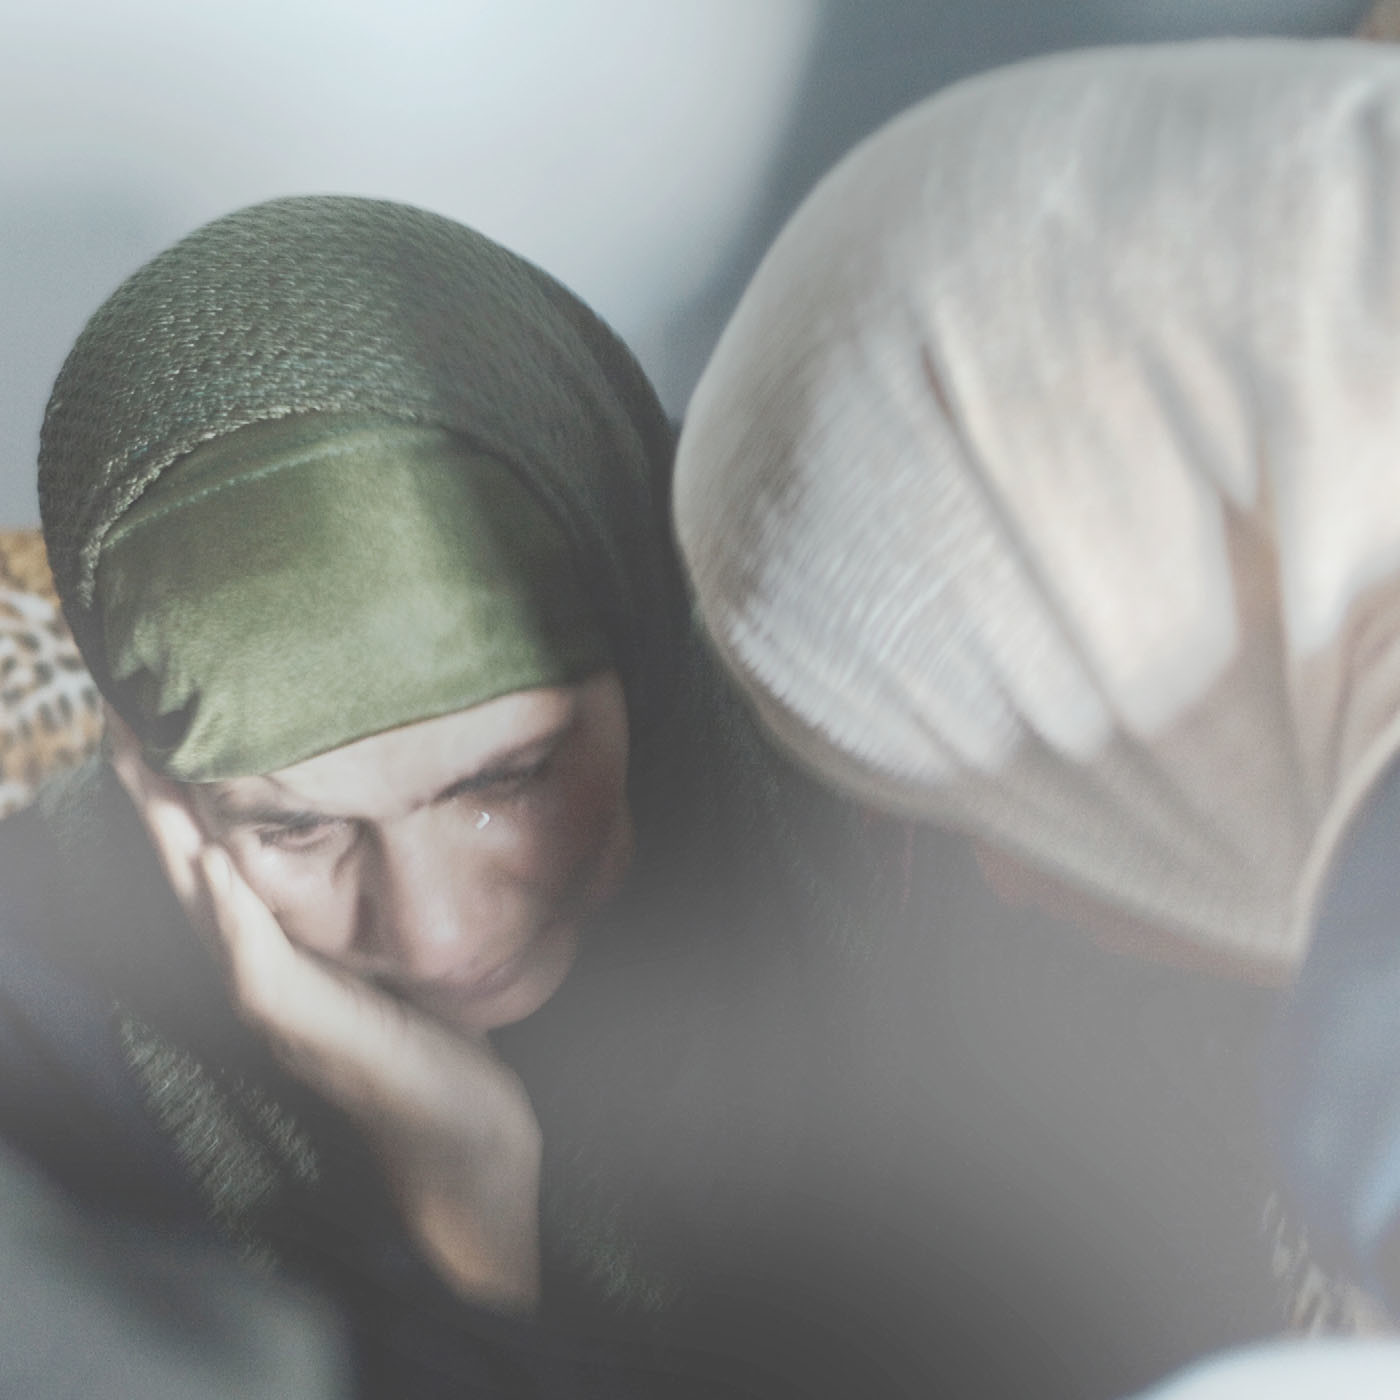 The grieving mother of a 17-year-old Palestinian boy who was shot in the back after stabbing an Israeli soldier at a checkpoint, 2008.